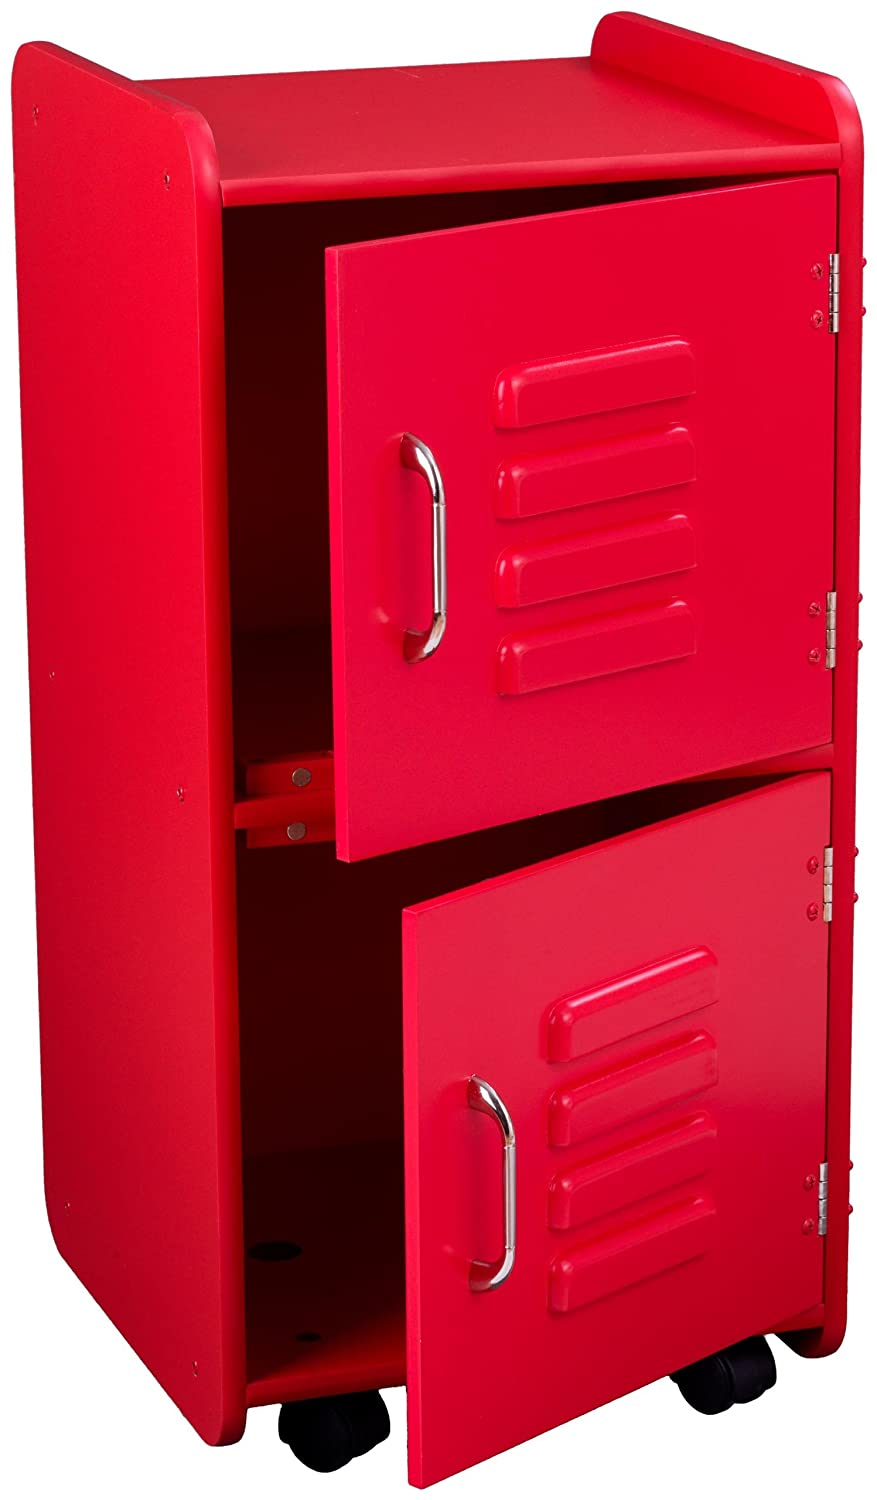 KidKraft Locker-Medium-Red 14322